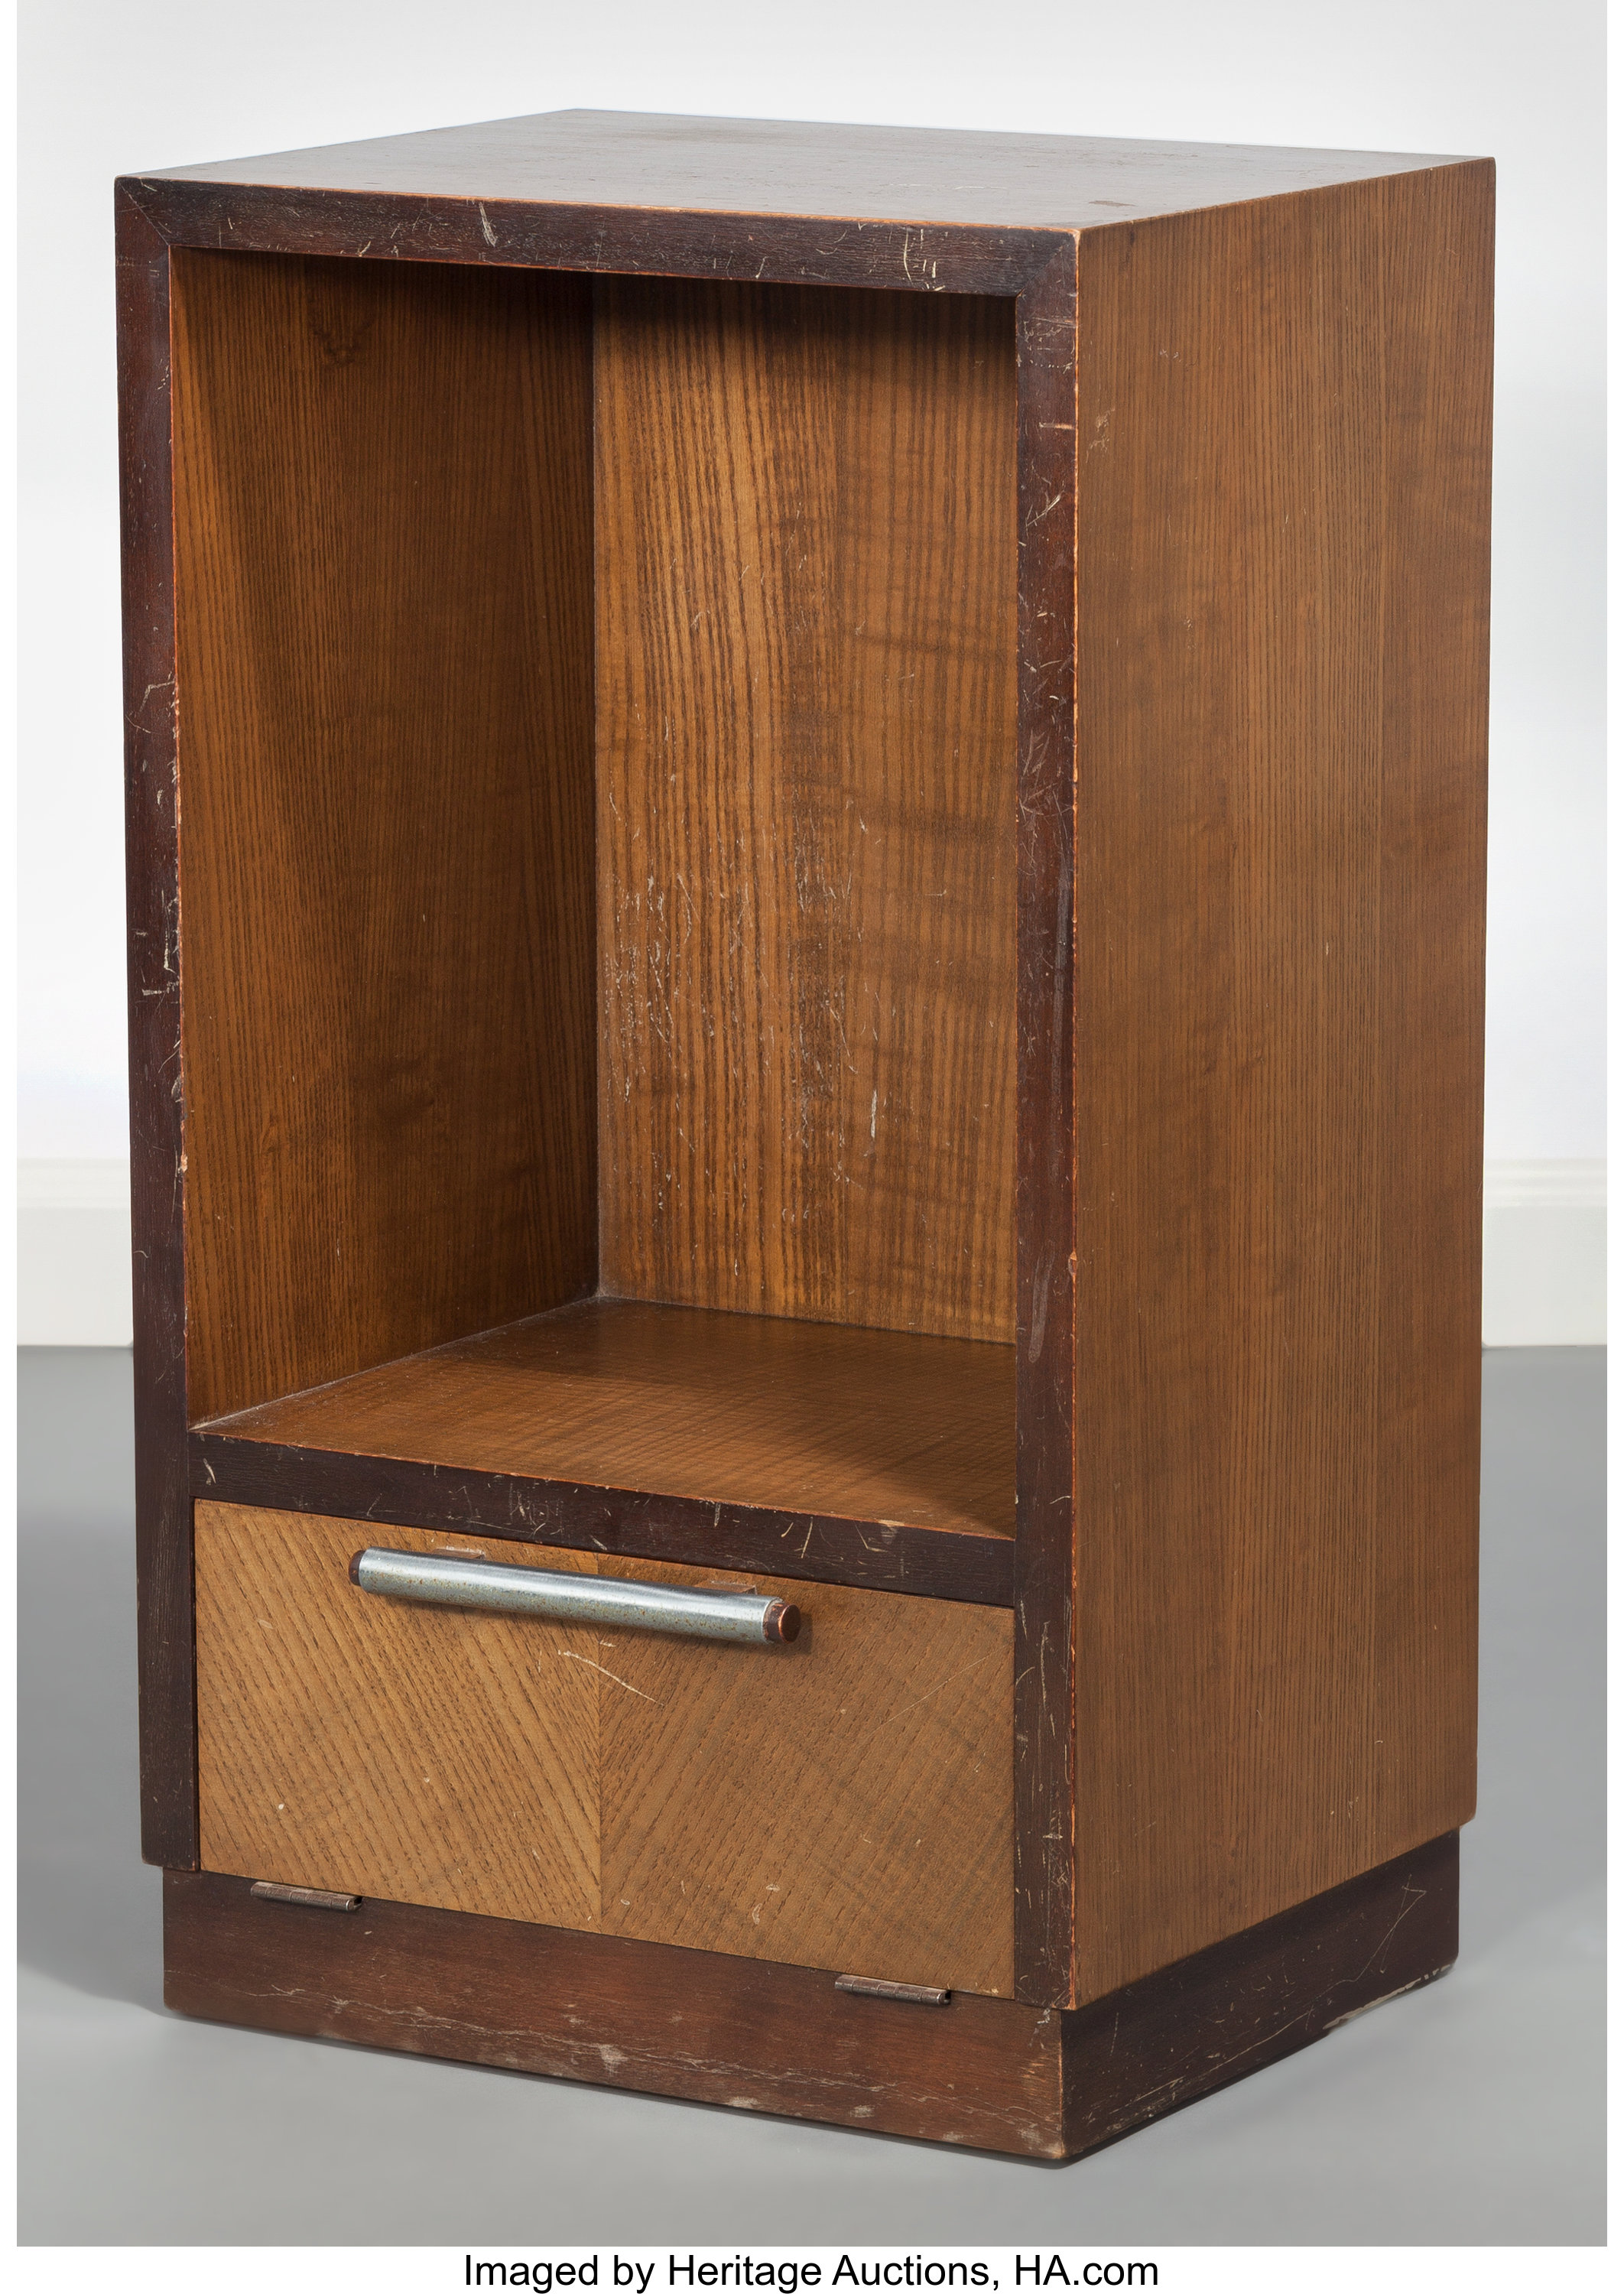 Gilbert Rohde American 1894 1944 Bedside Table 1933 Design Lot 60041 Heritage Auctions